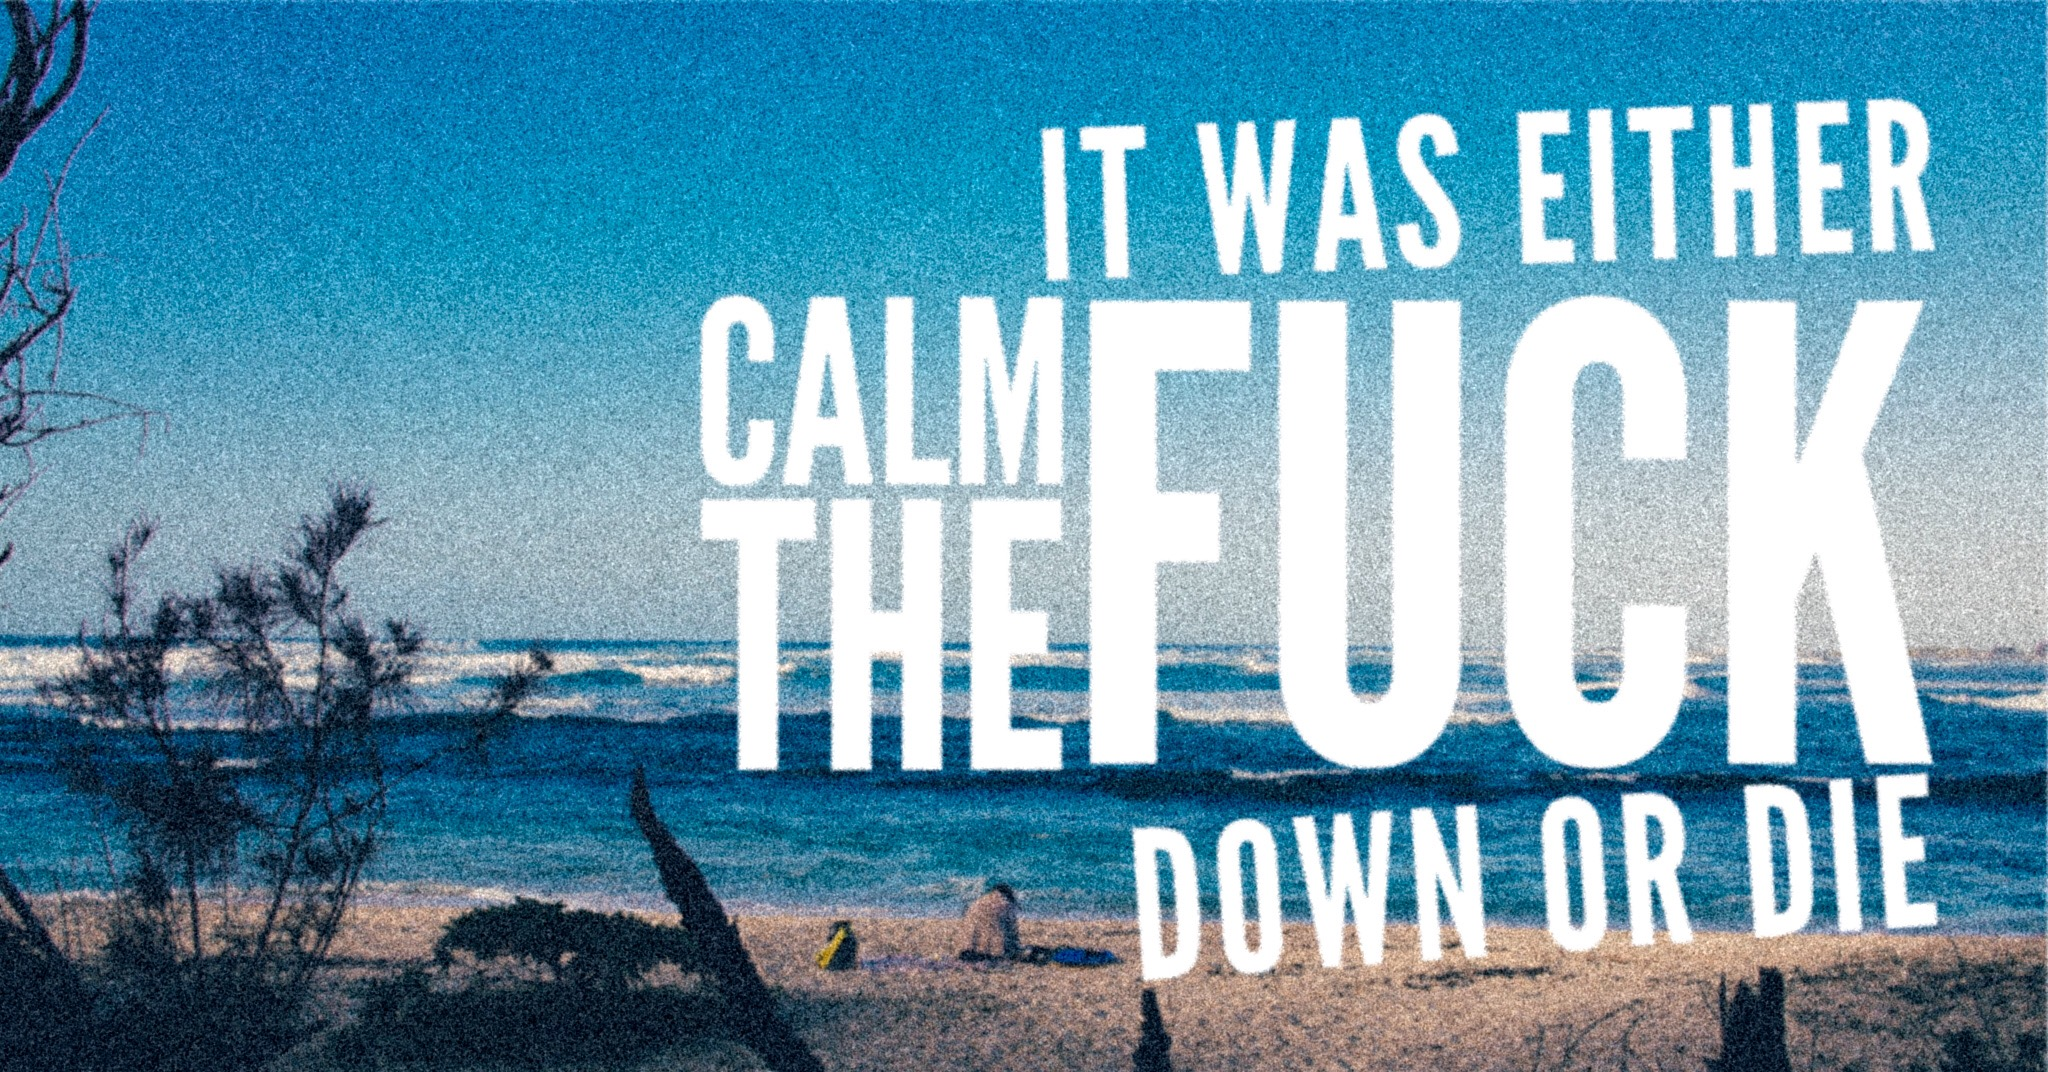 I had to calm the f*ck down